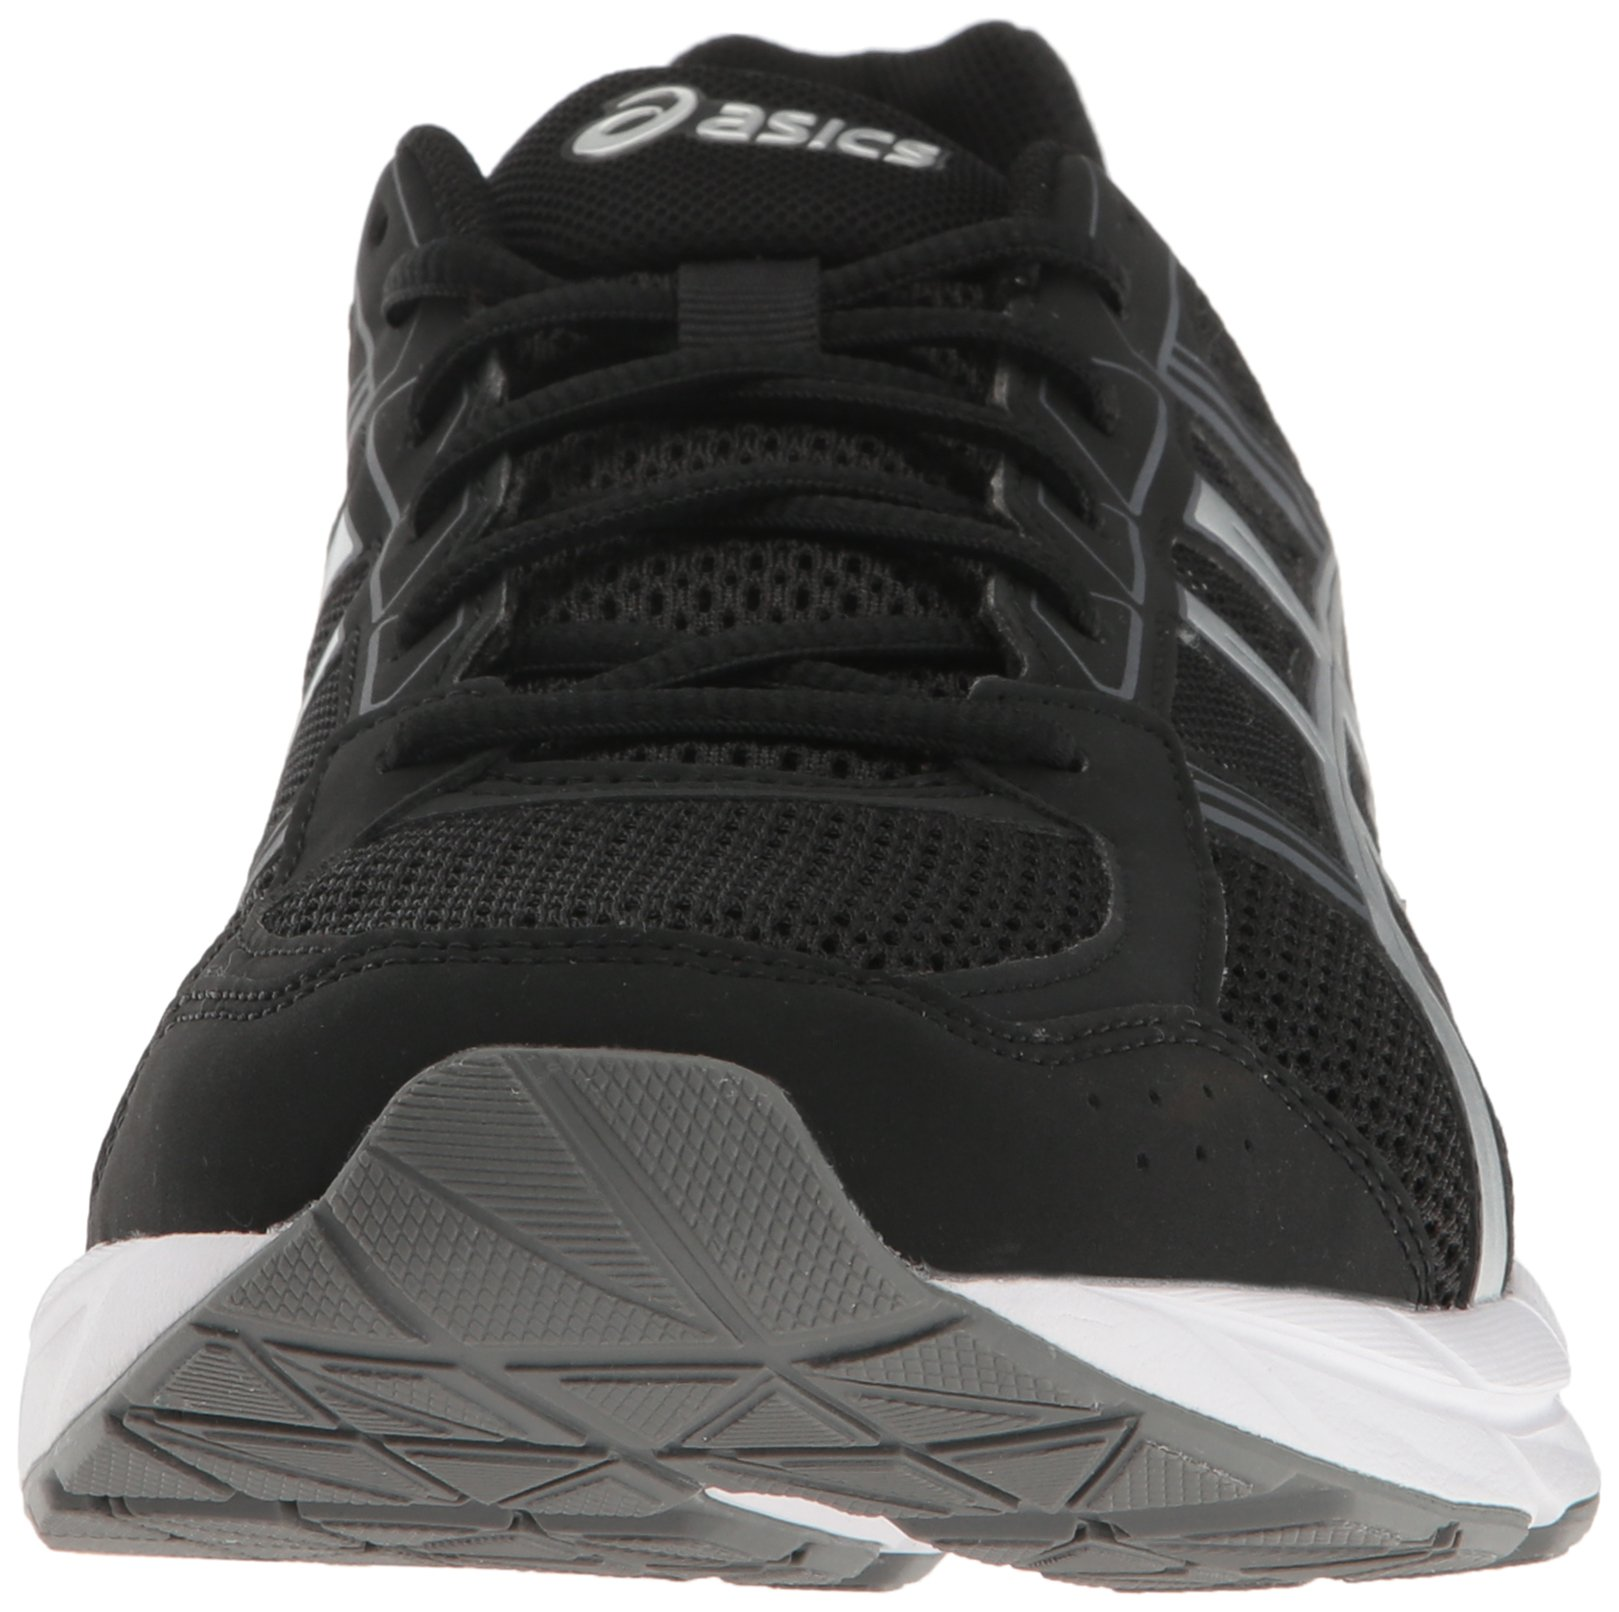 ASICS Men's Gel-Contend 4 Running Shoe, Black/Silver/Carbon, 7.5 M US by ASICS (Image #4)